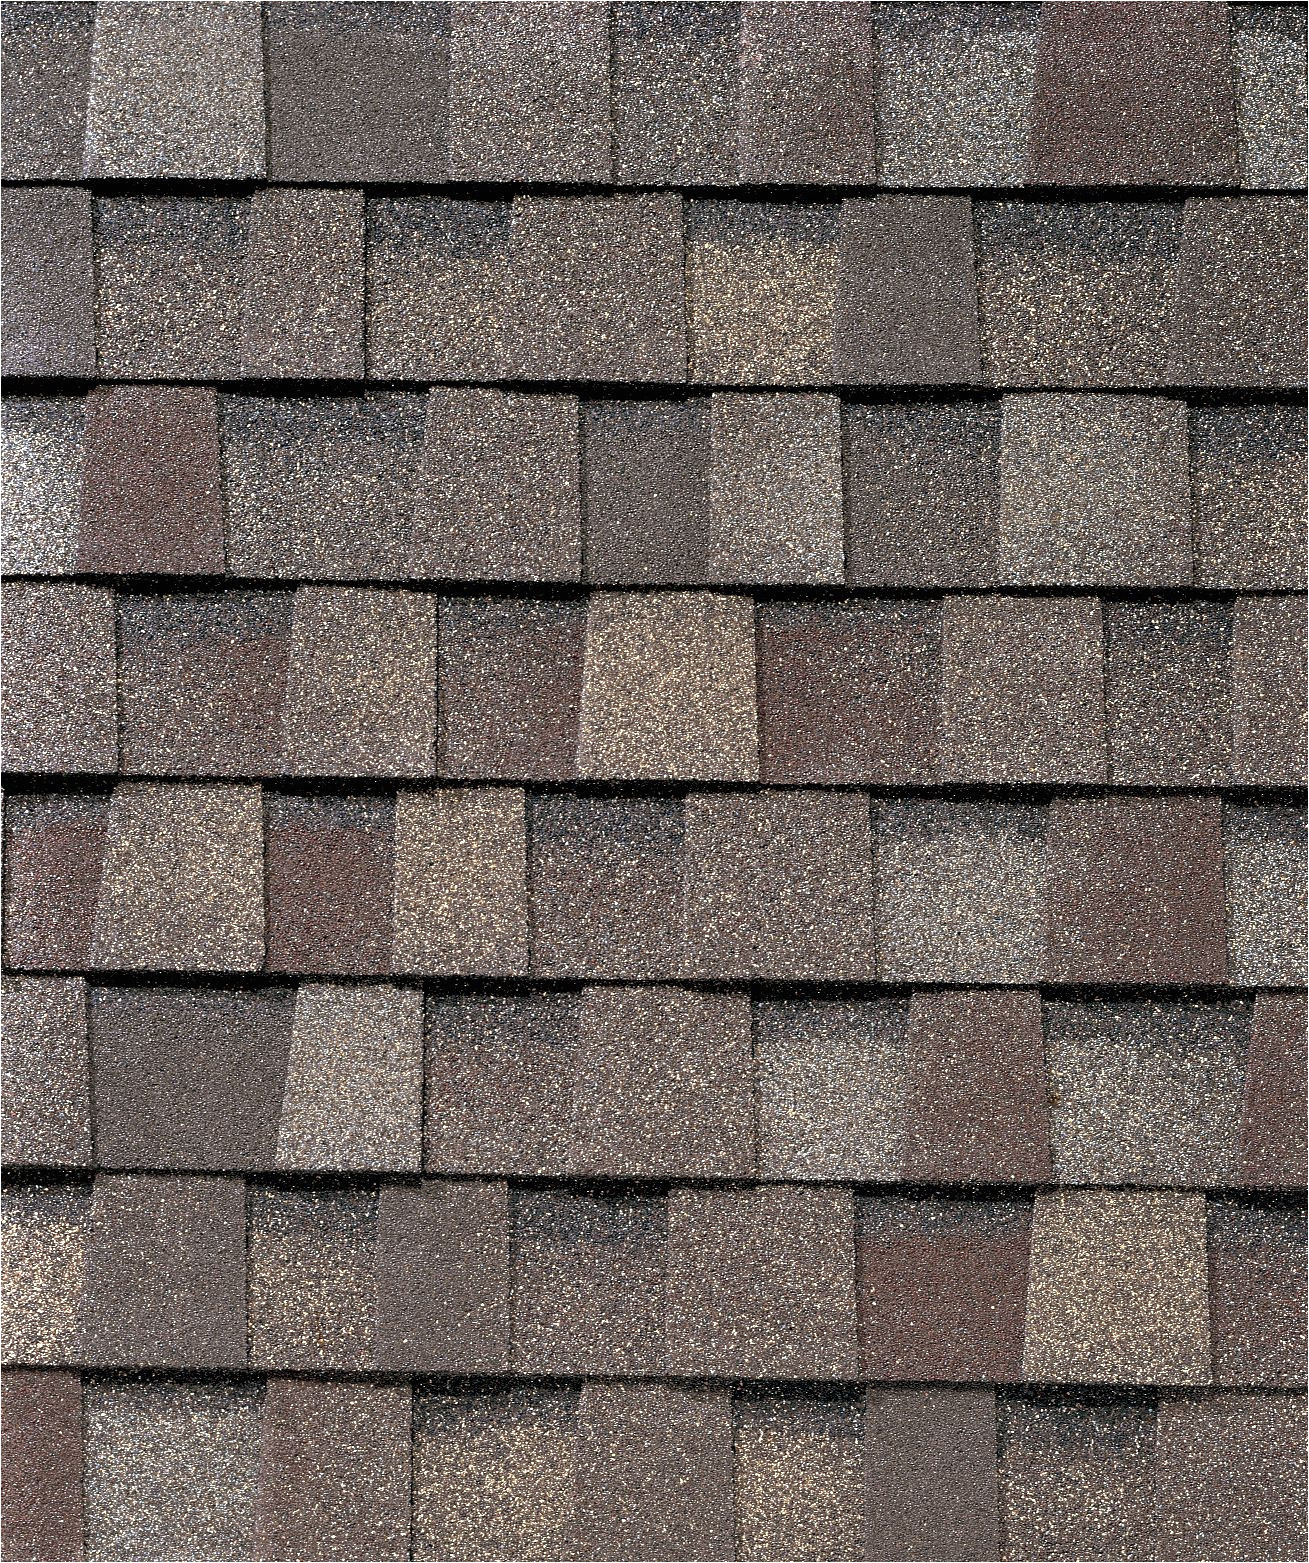 Tamko Heritage Premium Shingles Natural Timber Shingles Swatch Finguerra Project House